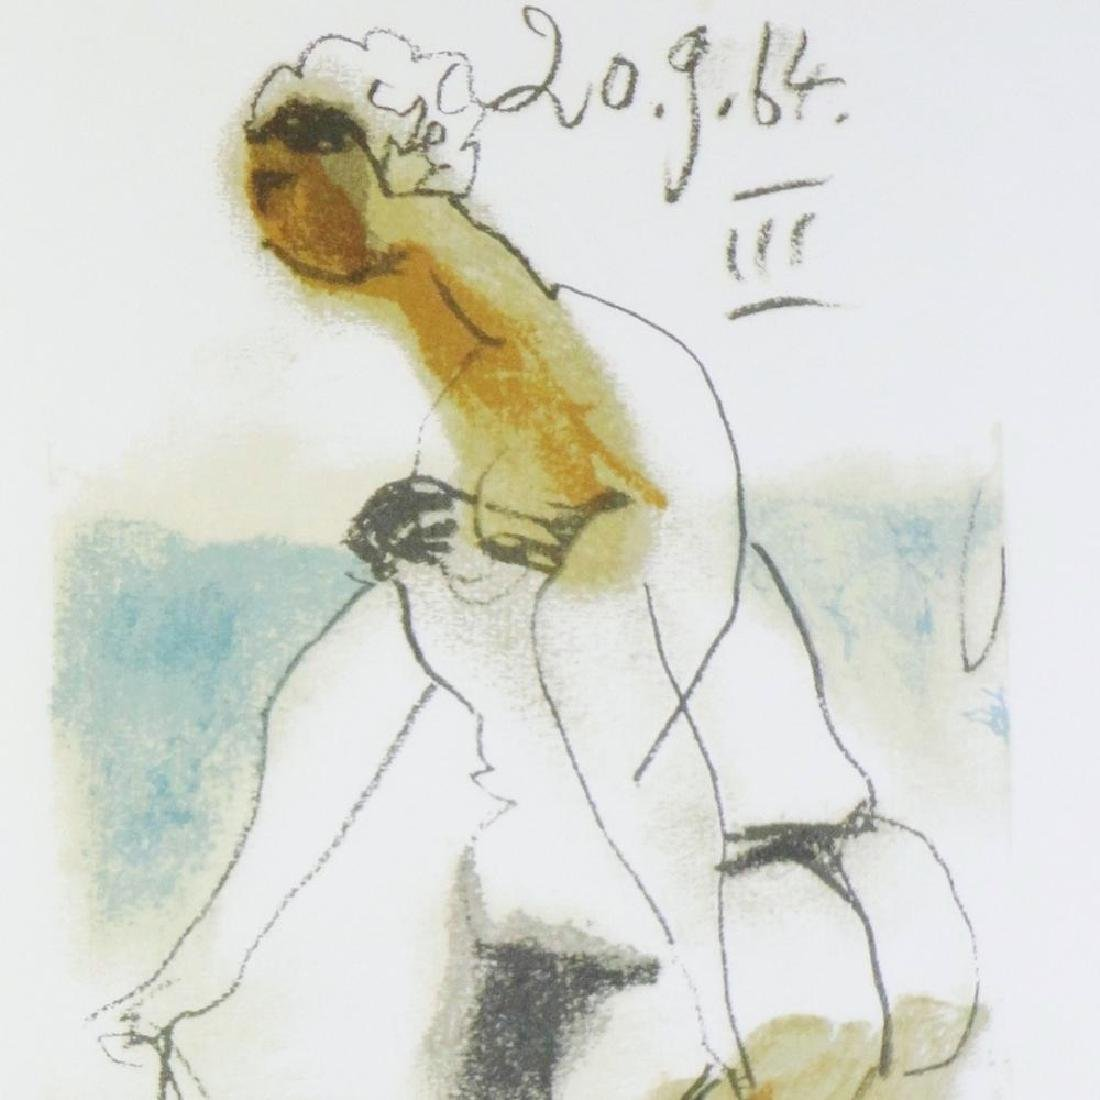 COLORED PICASSO EROTIC LIMITED EDITION HAND NUMBERED - 4